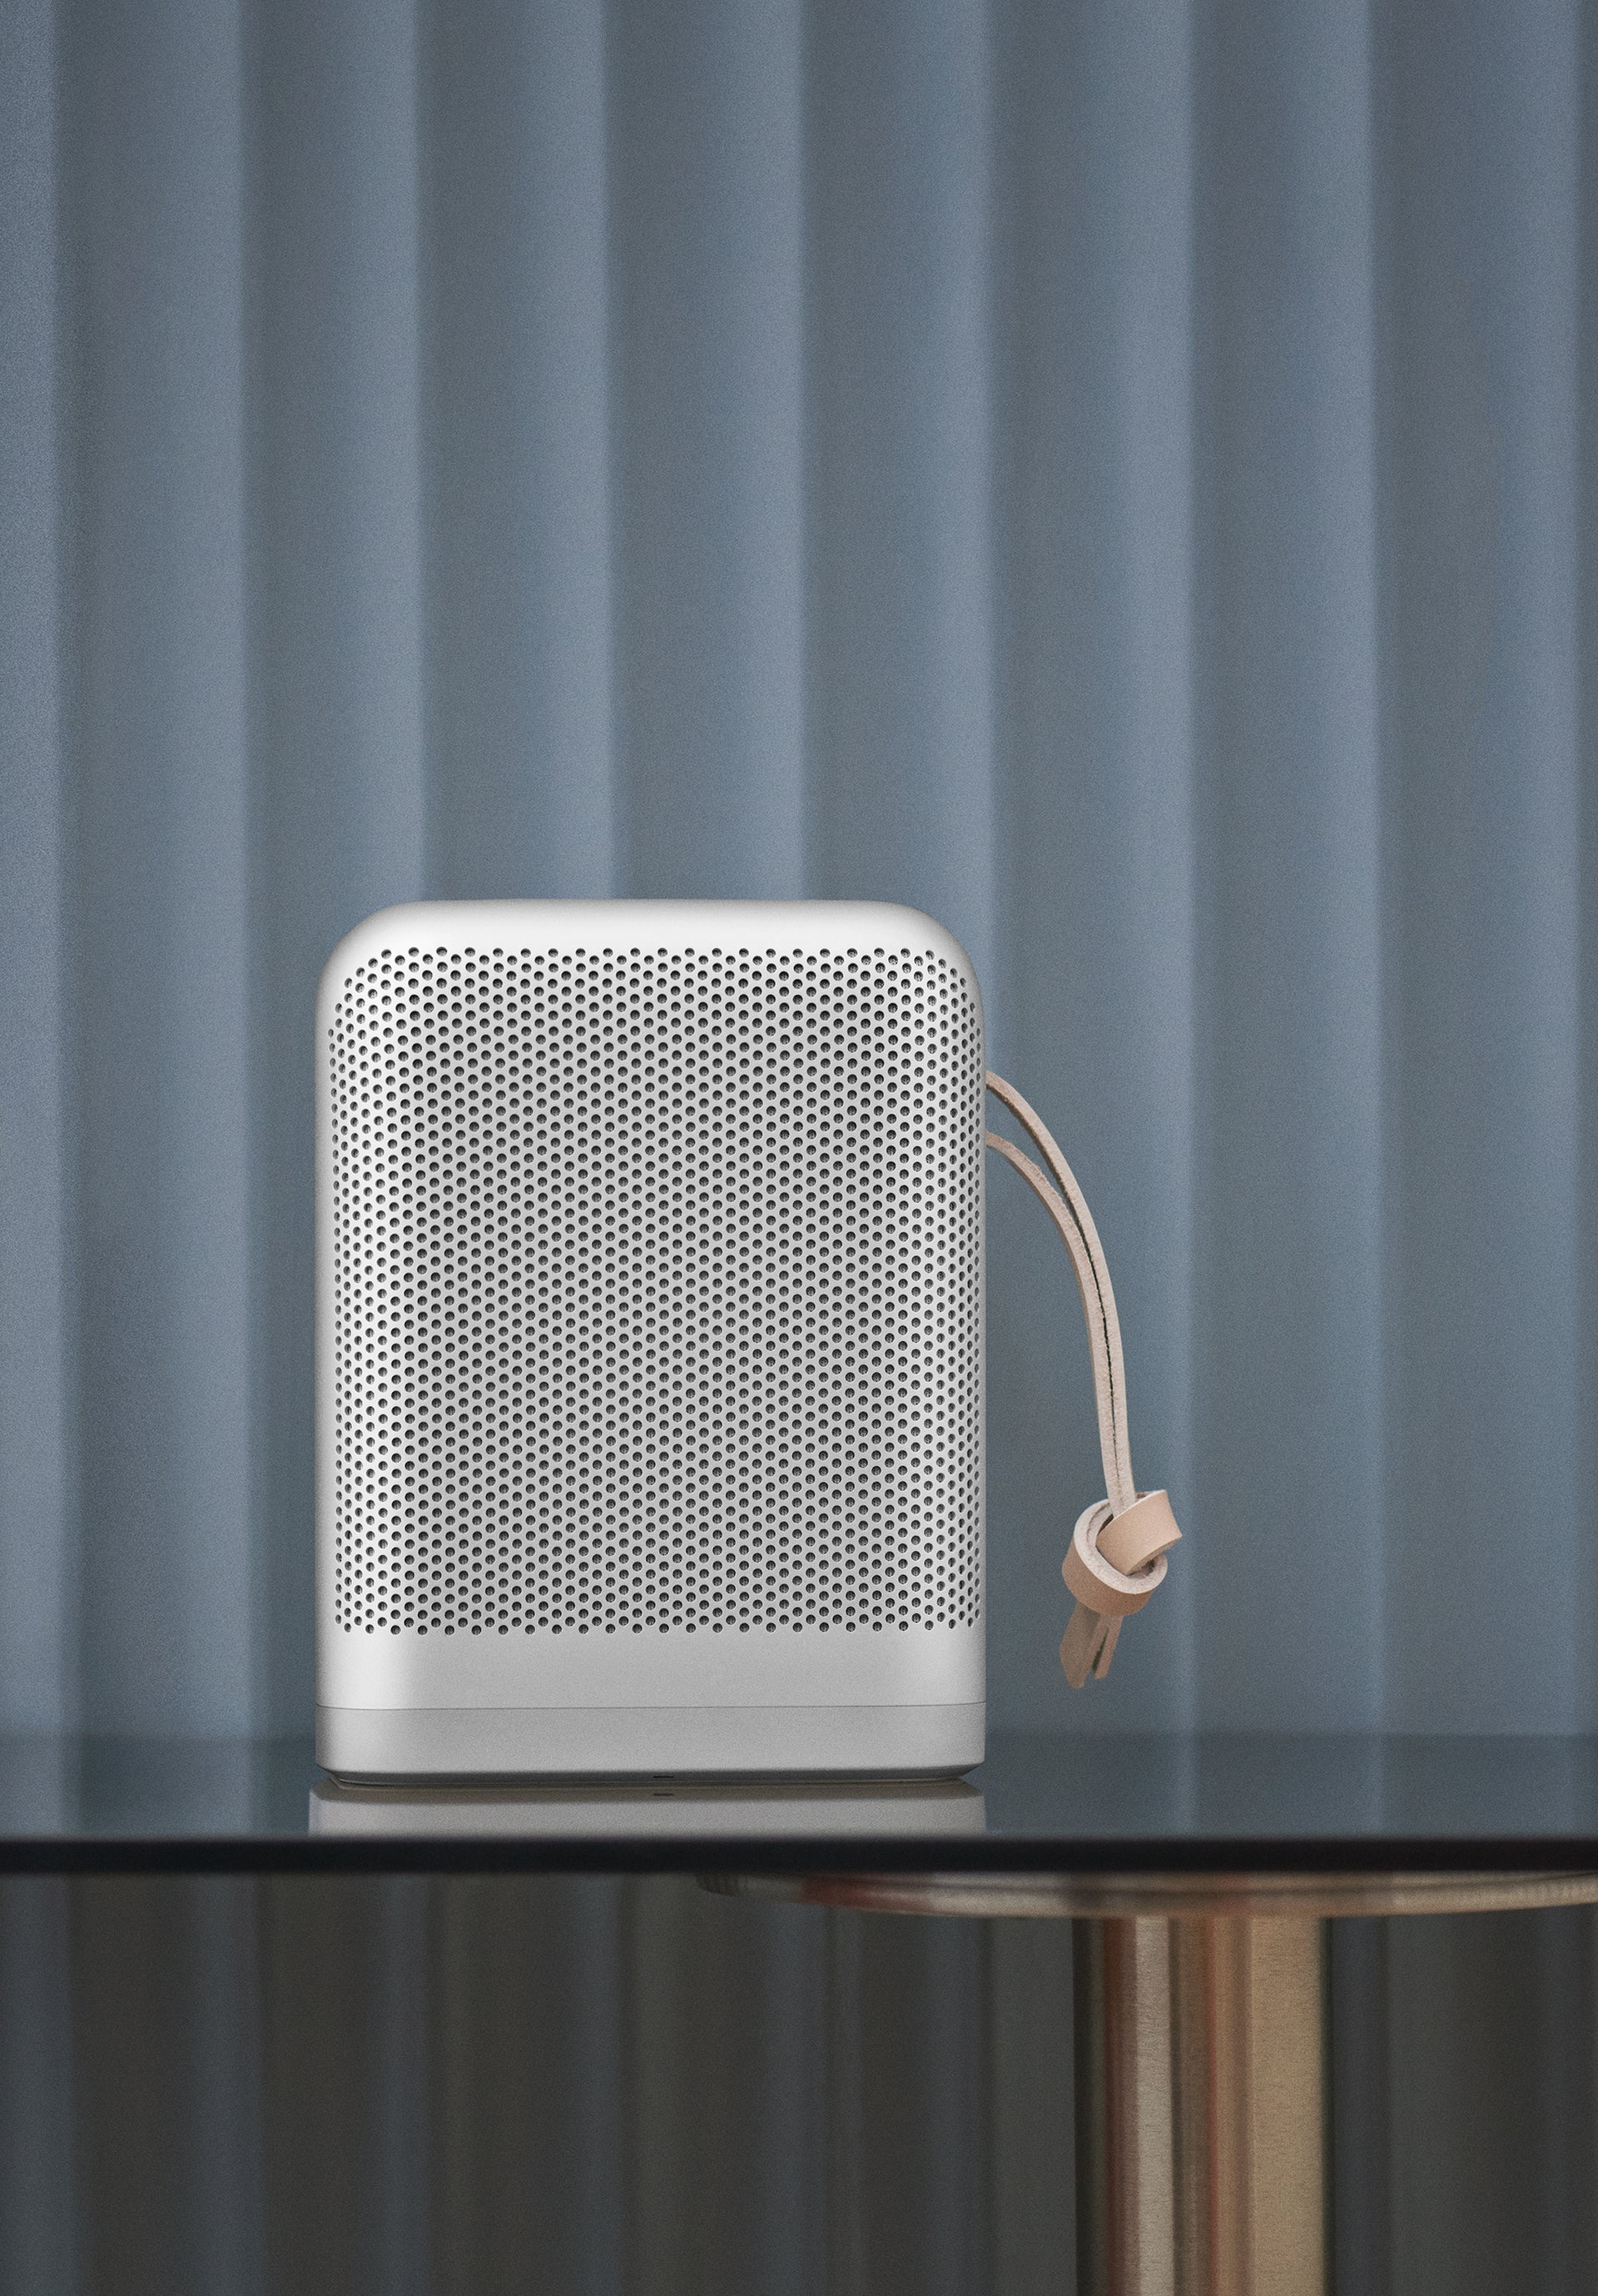 Beoplay P6